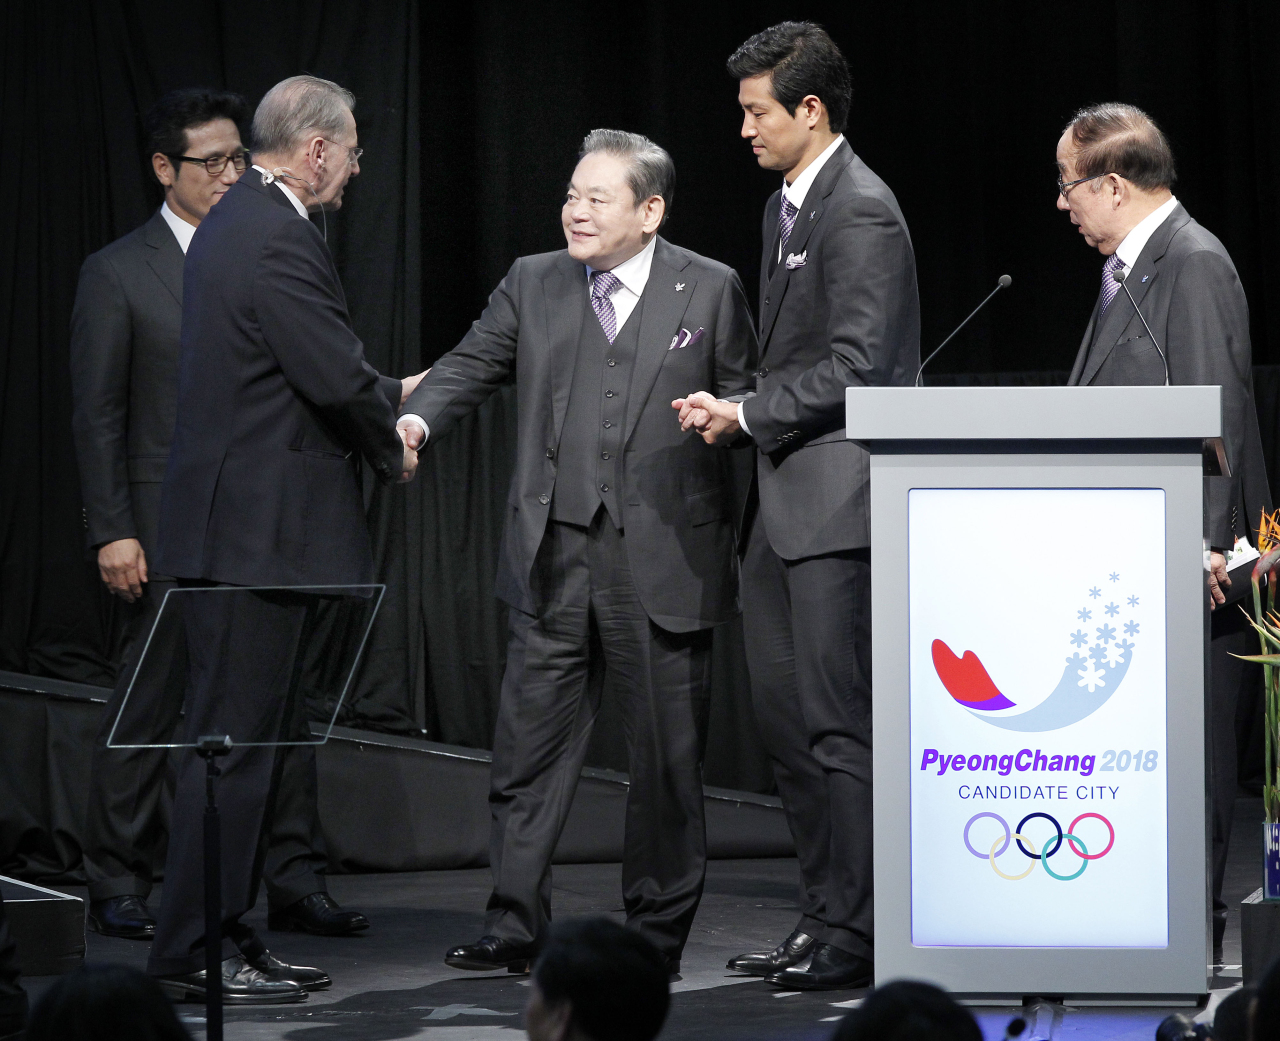 Samsung Group Chairman Lee Kun-hee (center) shakes hands with Jacques Rogge, then president of the International Olympic Committee, after a presentation by the South Korean representatives to pitch PyeongChang, Gangwon Province, in Durban, South Africa, on July 6, 2011. (Yonhap)